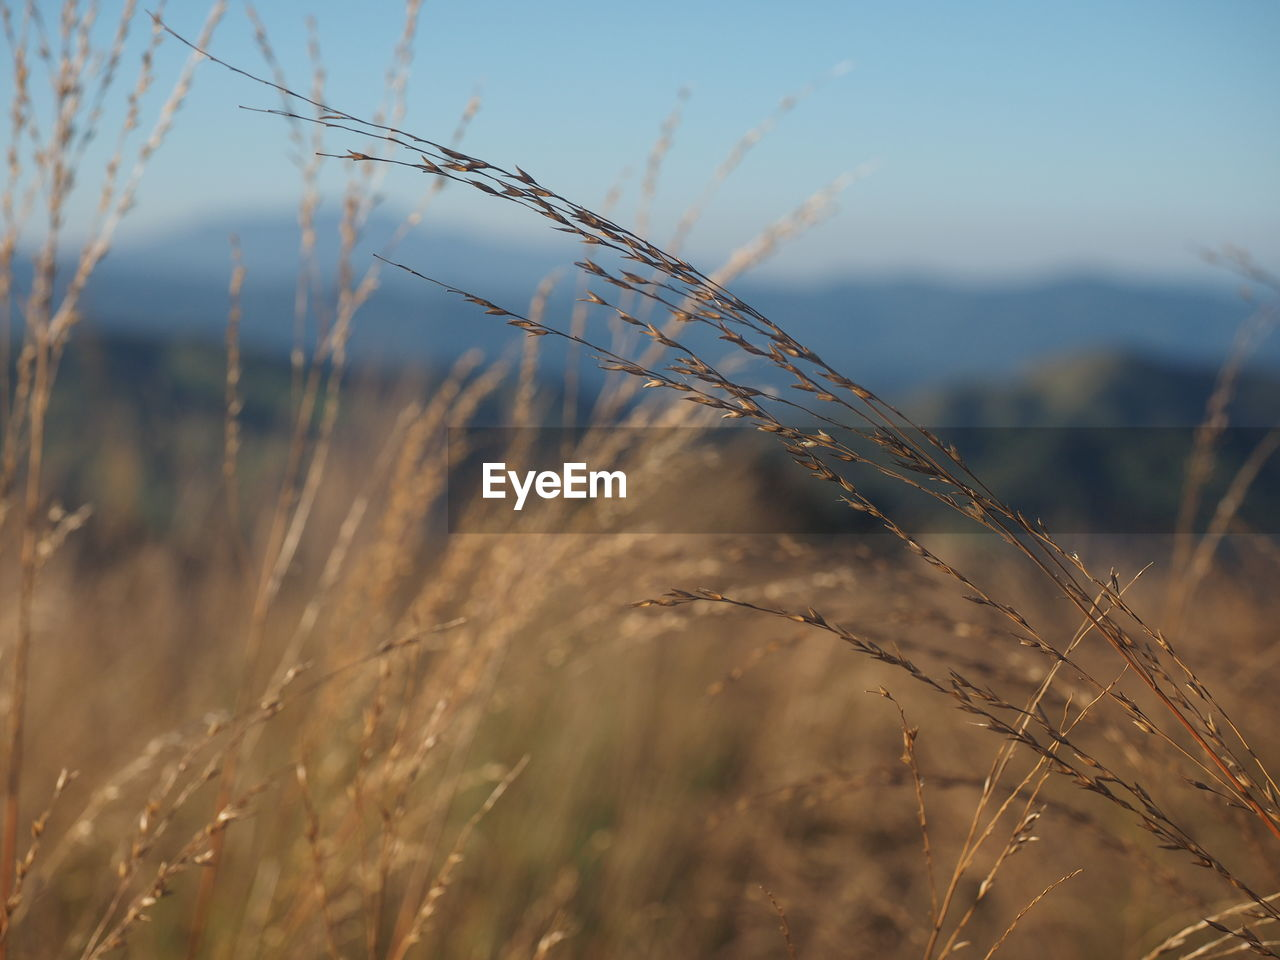 plant, growth, crop, field, nature, focus on foreground, land, cereal plant, agriculture, beauty in nature, tranquility, close-up, no people, day, wheat, landscape, sky, farm, sunlight, outdoors, timothy grass, stalk